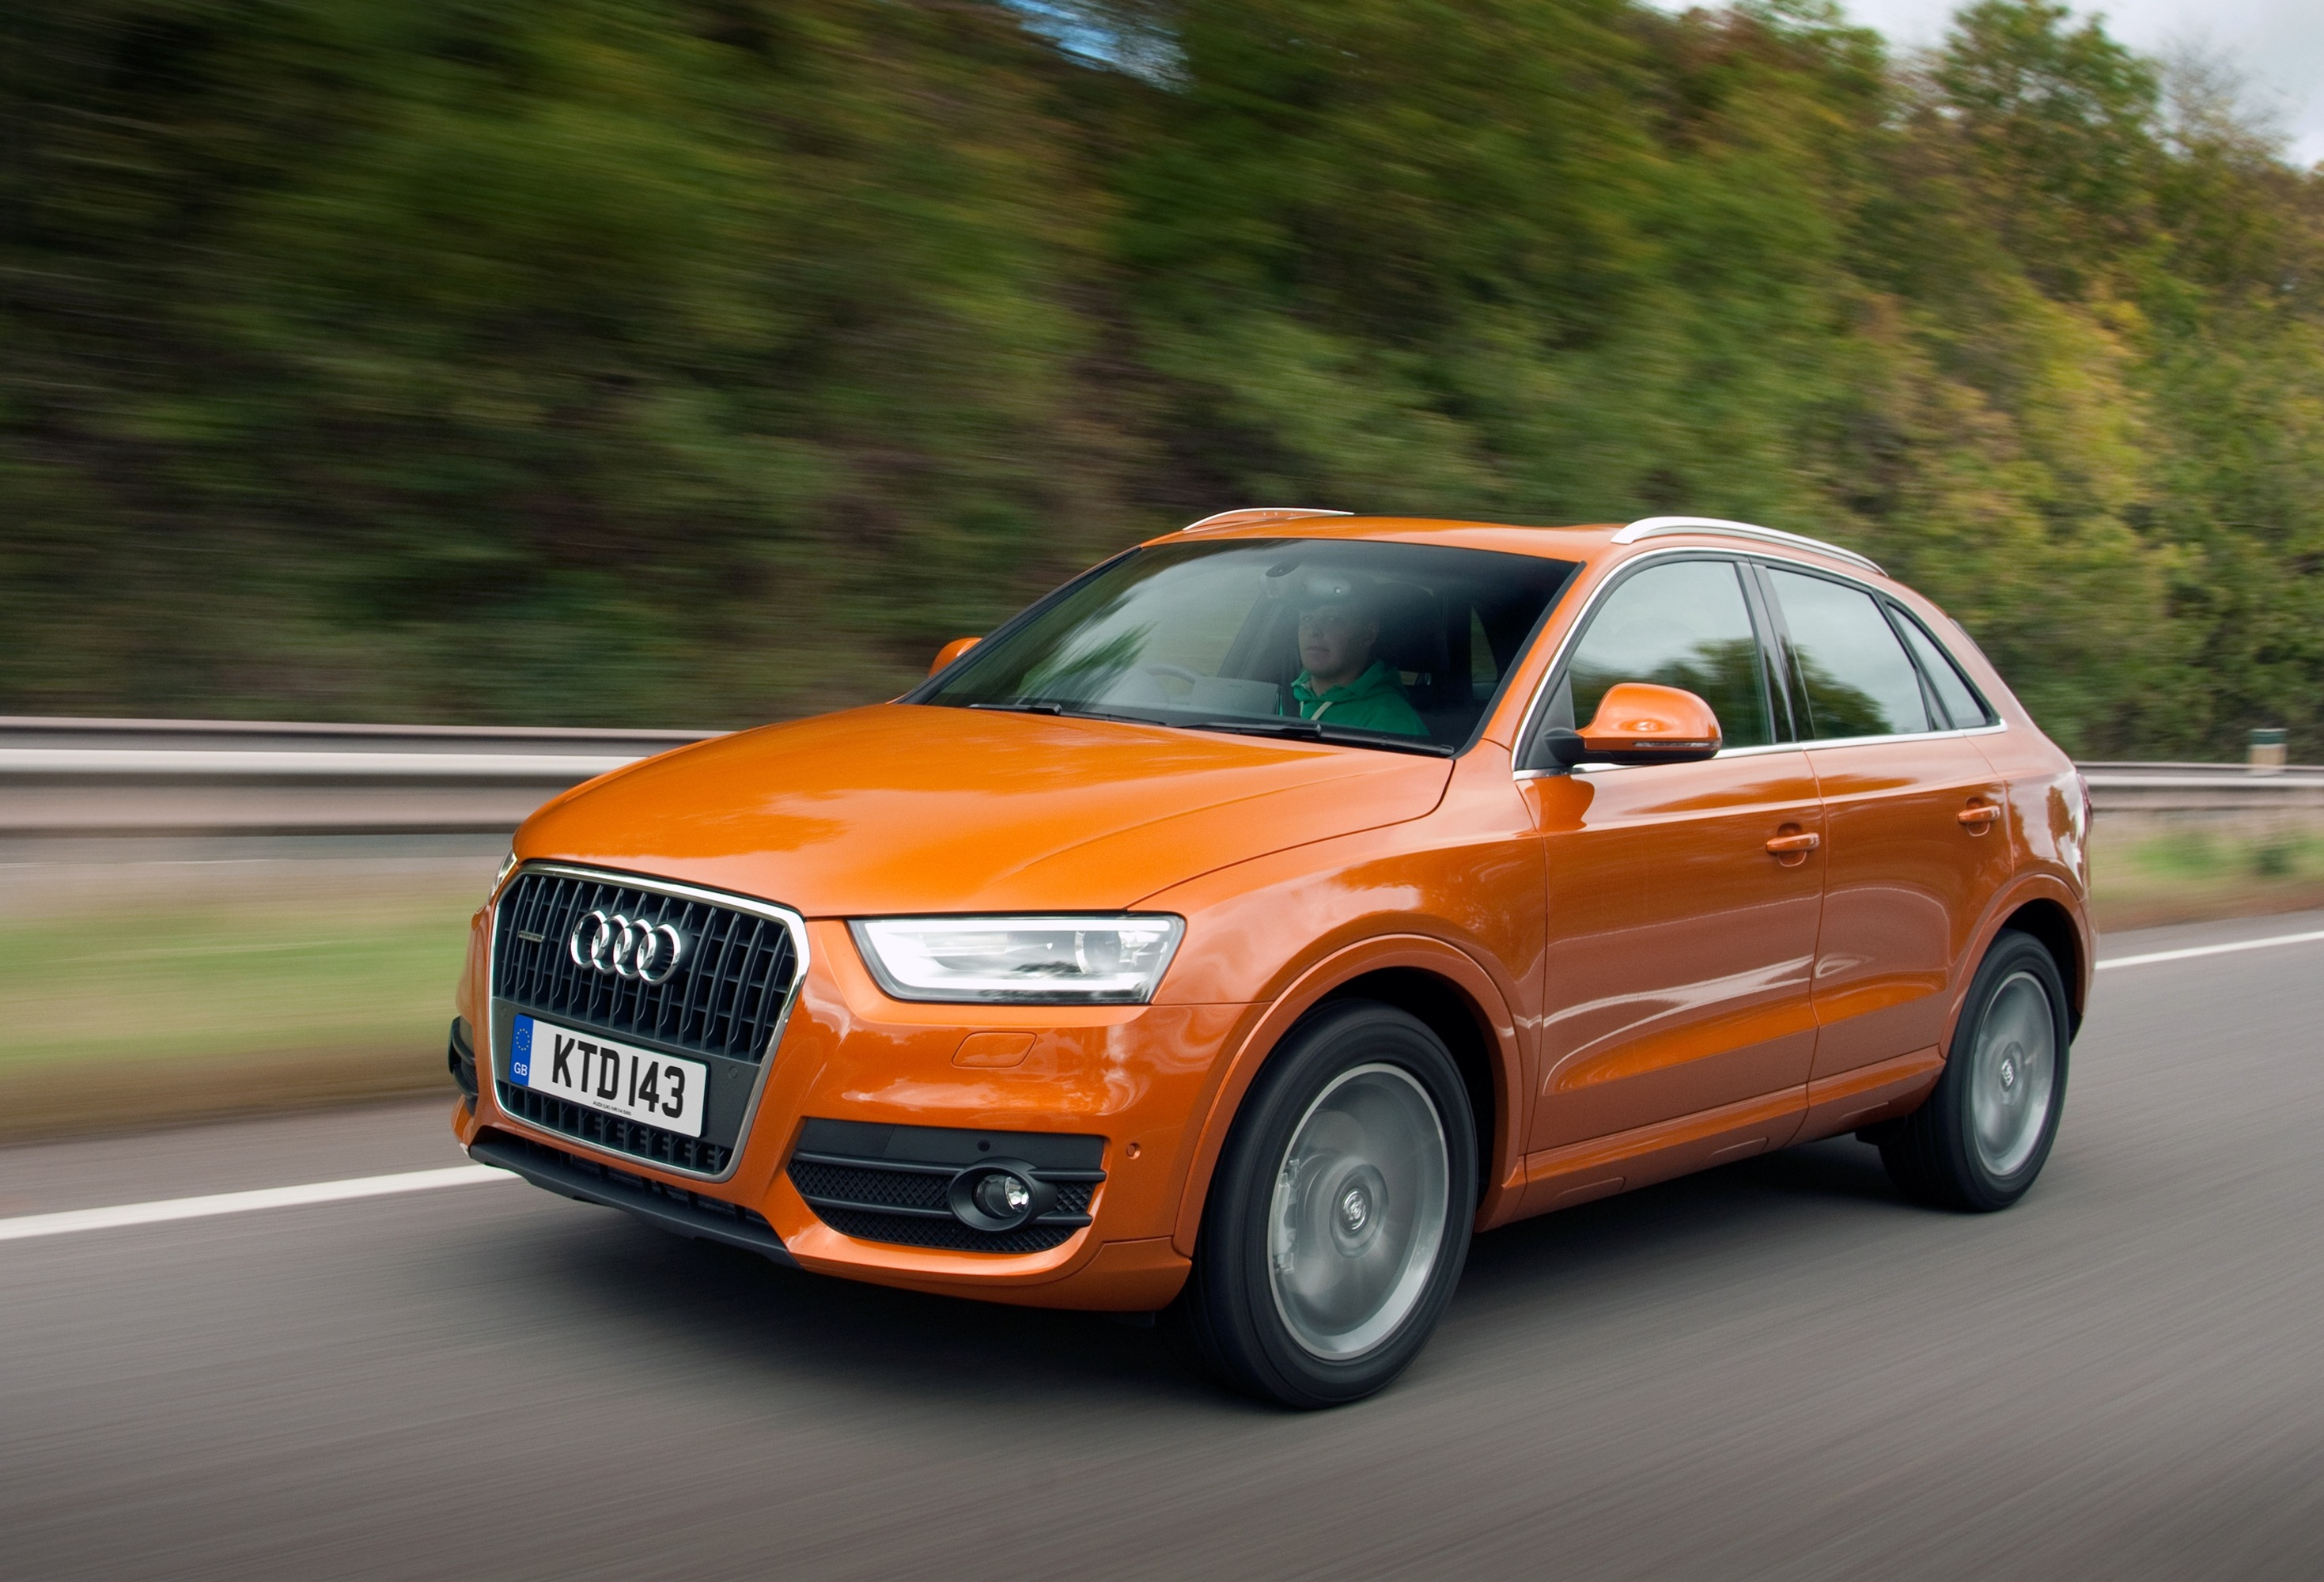 Audi Q3 compact SUV was awarded five stars by the safety assessment Euro NCAP programme in the 'Small Off-Road 4x4' category